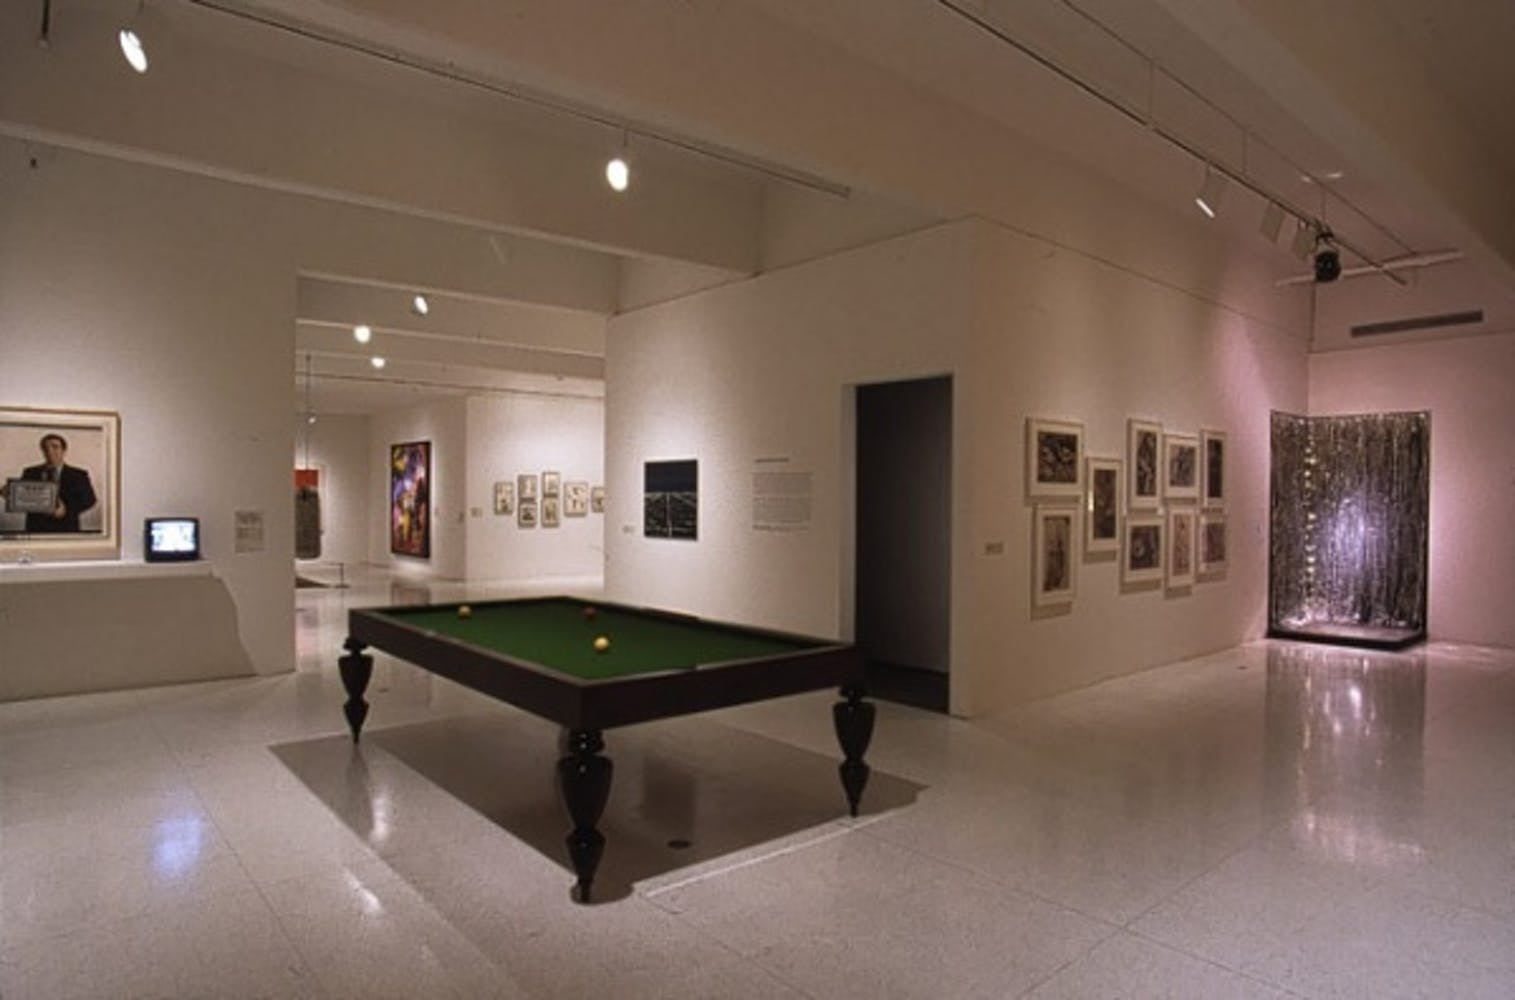 Installation view of American Tableaux: Selections from the Collection of Walker Art Center, 2001